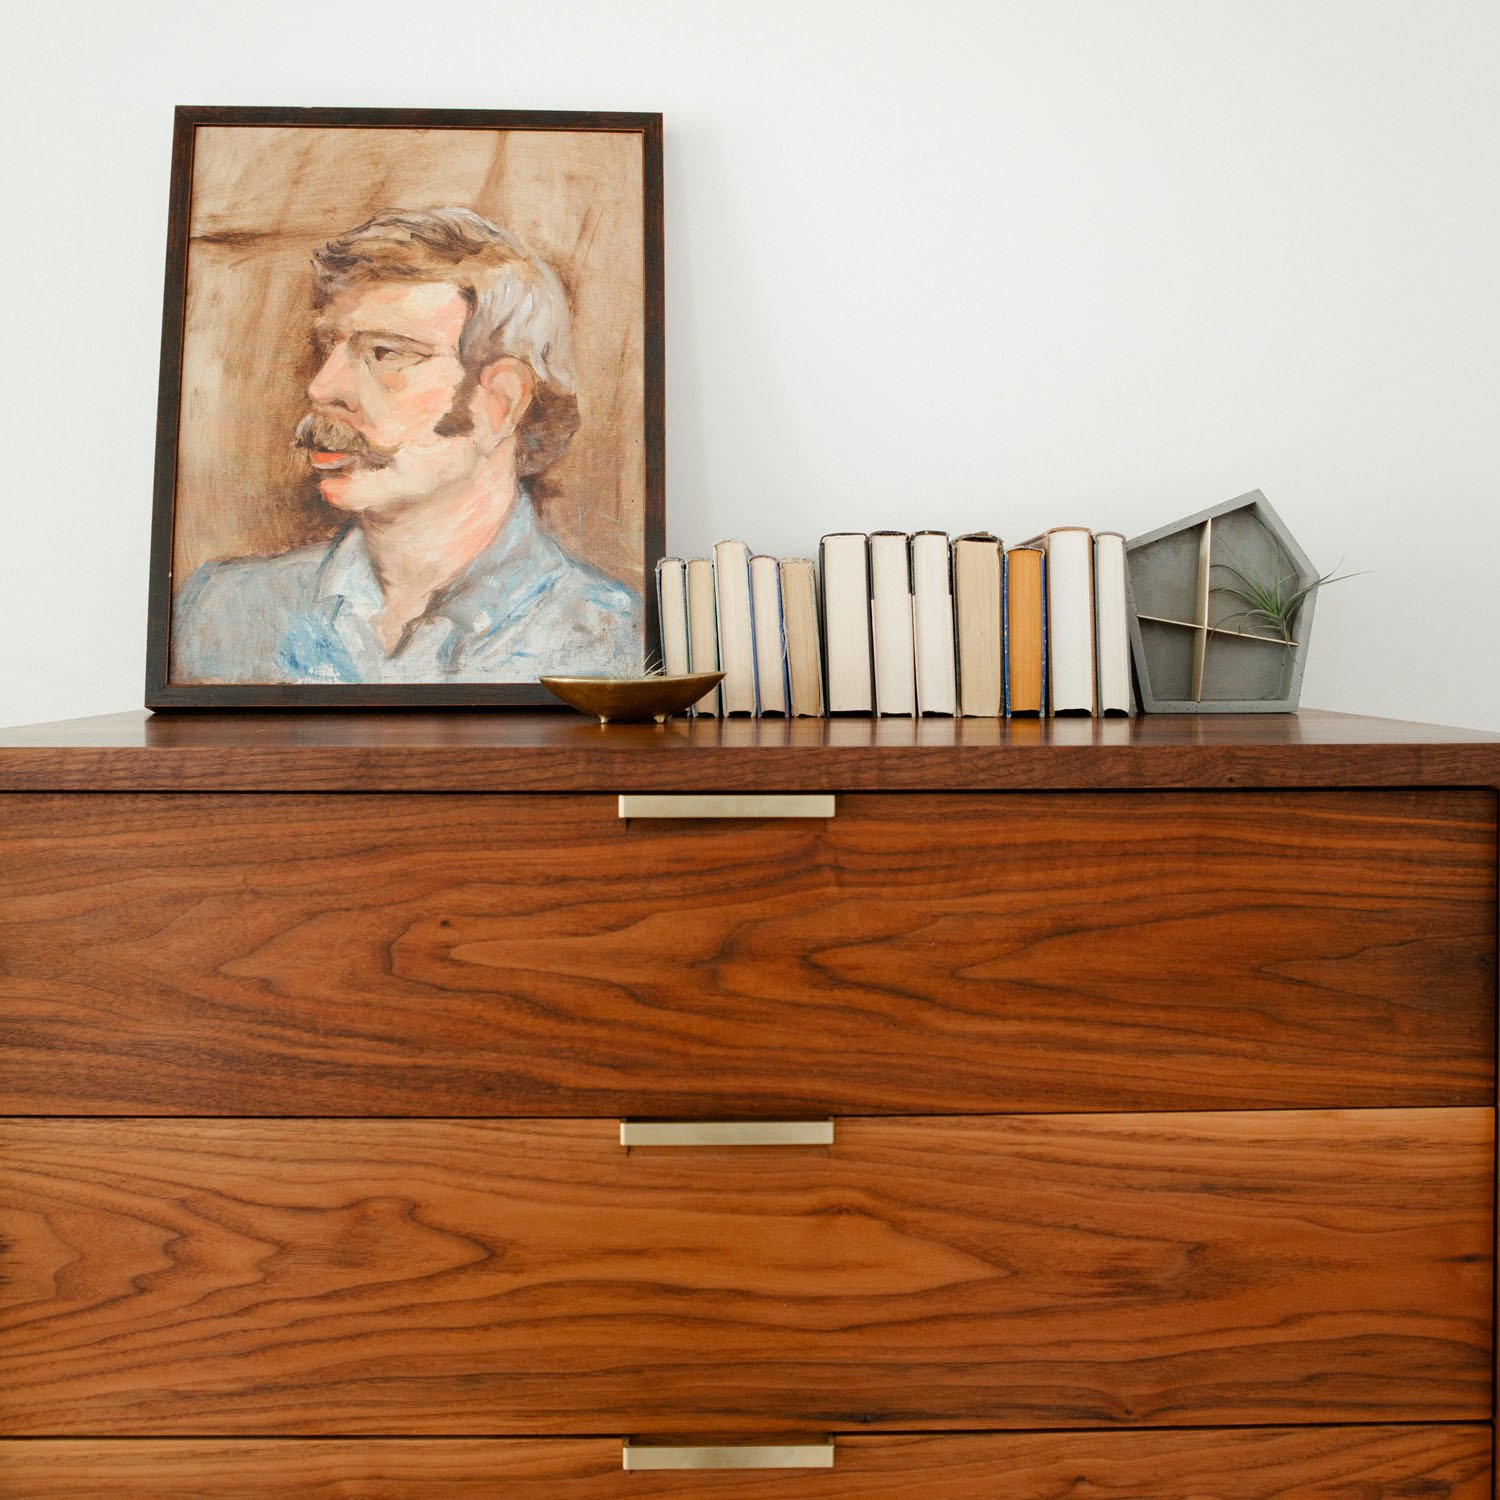 Before breaking off on her own, Tacheny apprenticed with Chicago woodworker John Miller, designed for Blu Dot, and worked on Target's furniture design team. Tagged: Storage Room and Cabinet Storage Type.  Best Photos from Modern Woodwork by Way of the California Coast